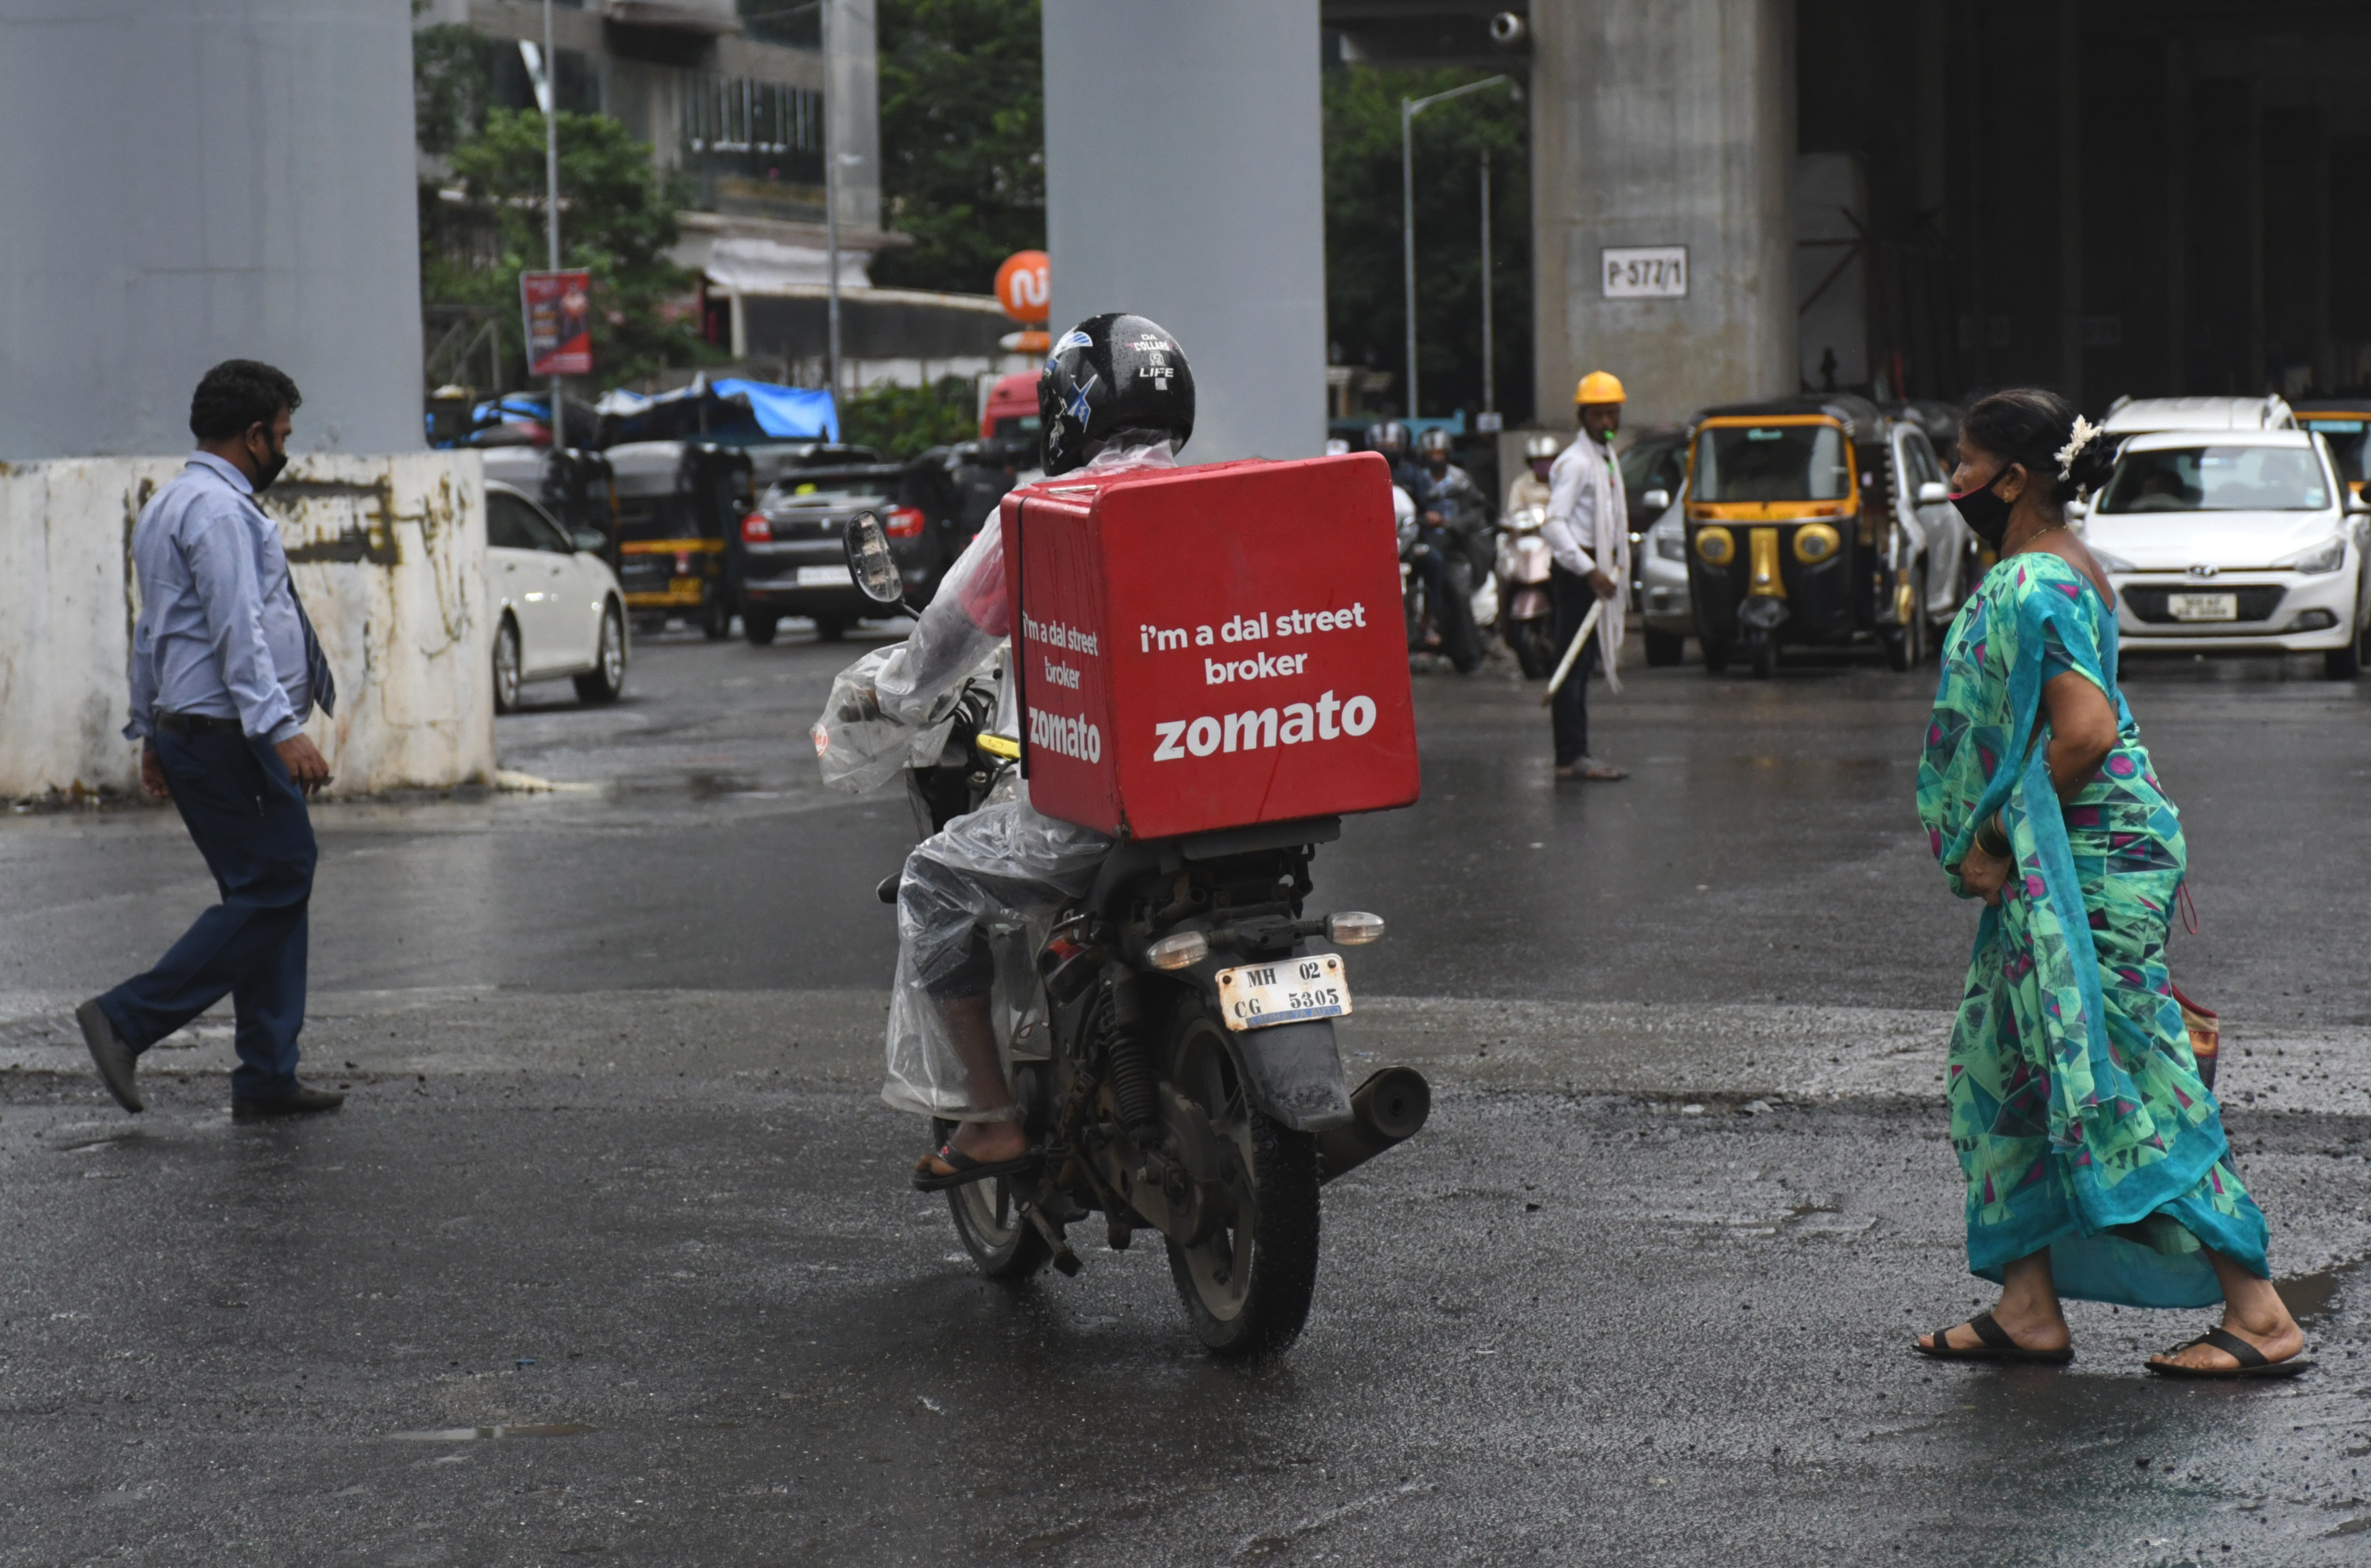 techcrunch.com - Manish Singh - Food delivery firm Zomato surges 65% in key India debut